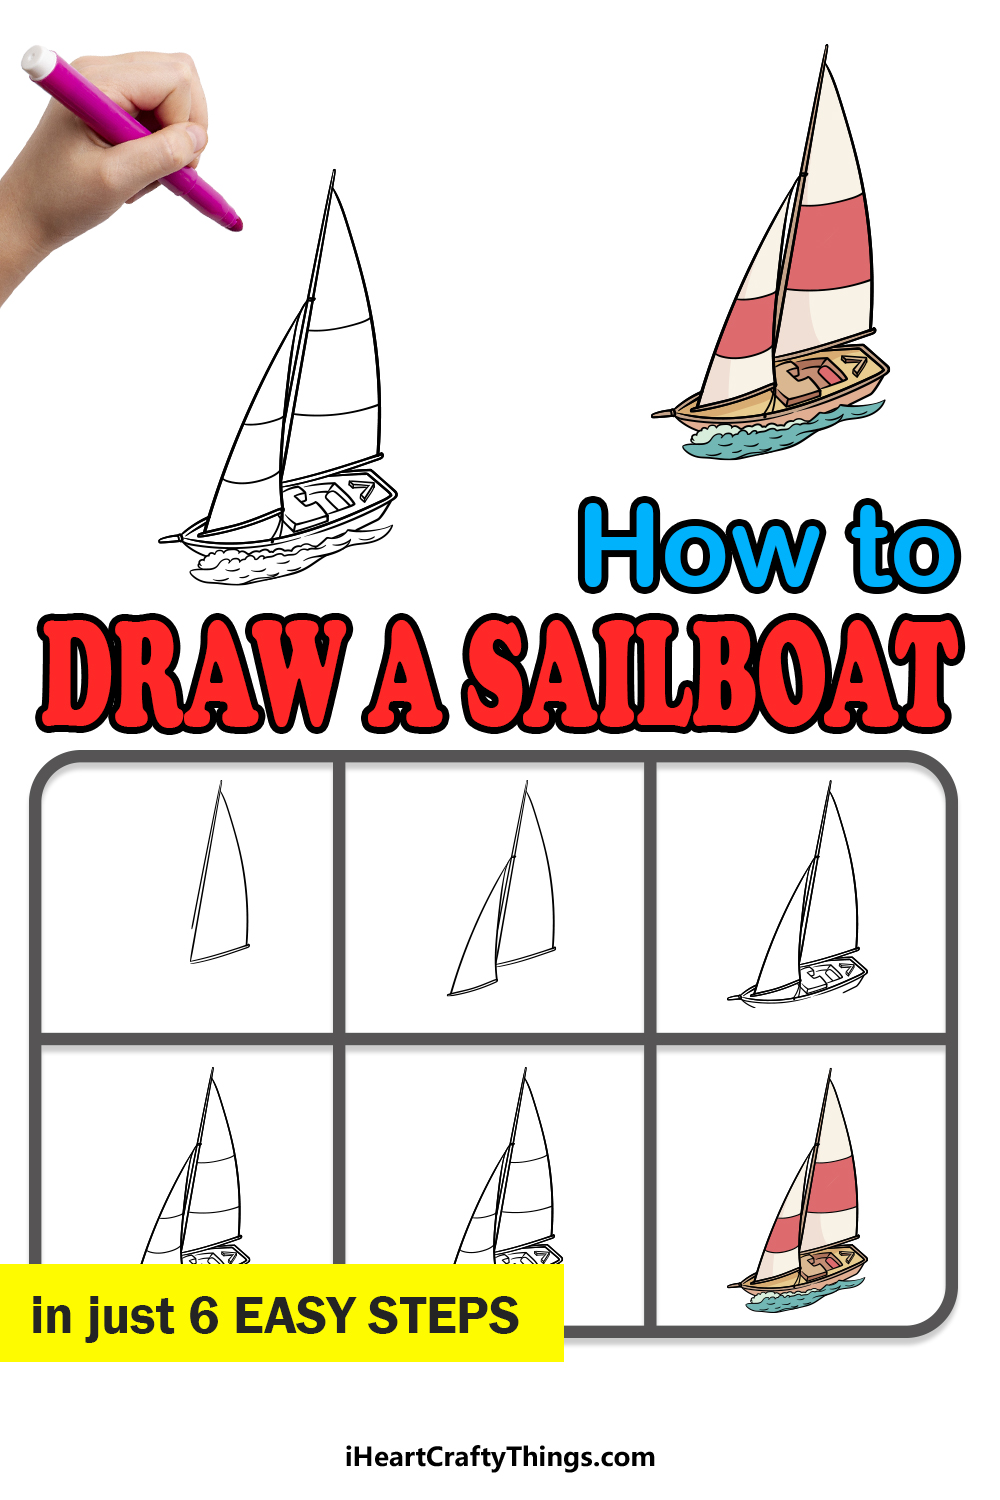 how to draw a sailboat in 6 easy steps